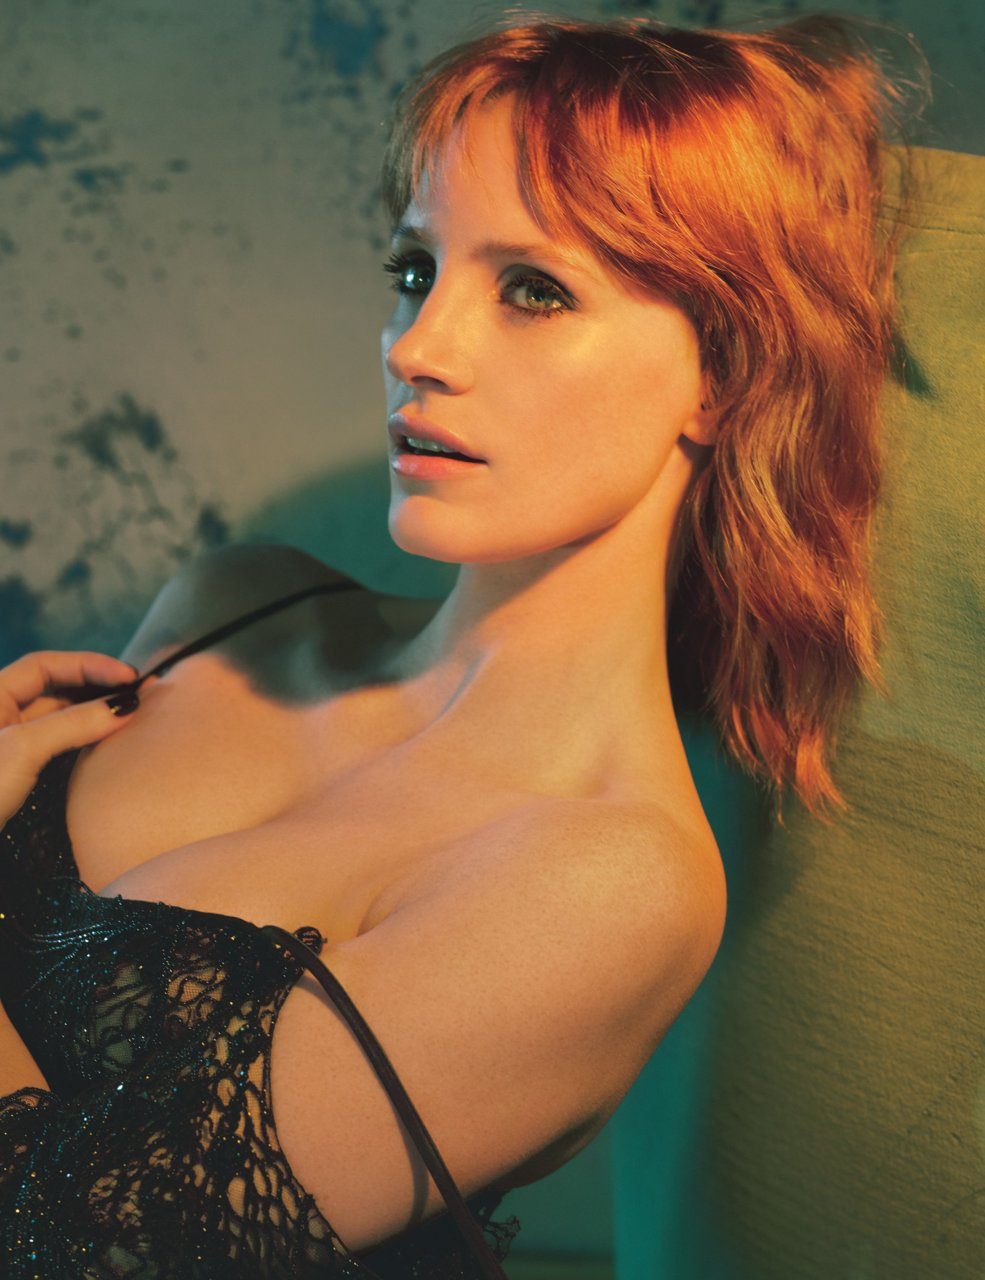 nude photos of jessica chastain